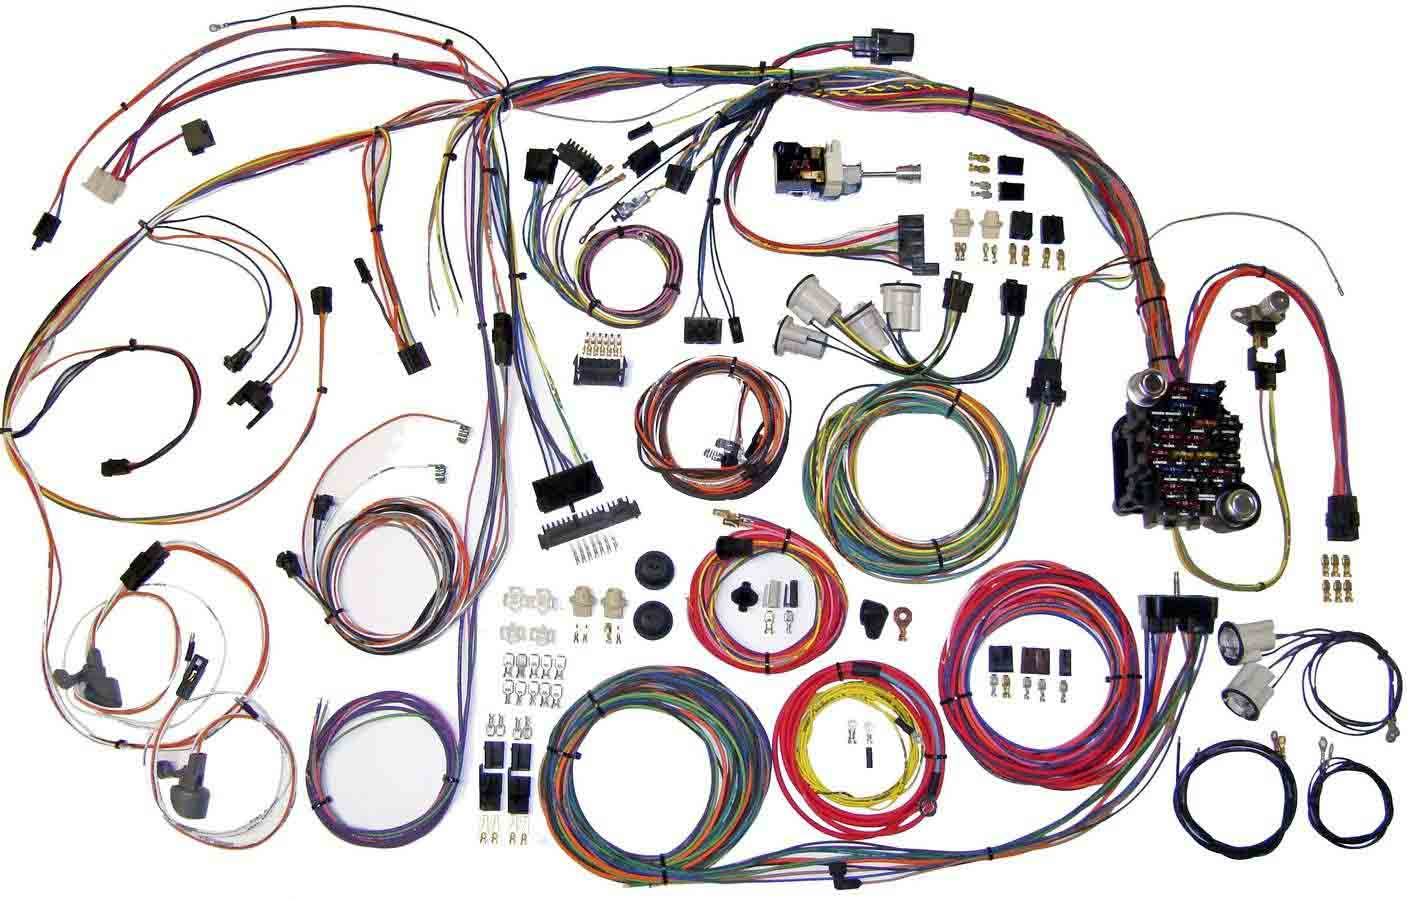 plymouth duster wiring harness shop for full wiring harness application specific rick s  shop for full wiring harness